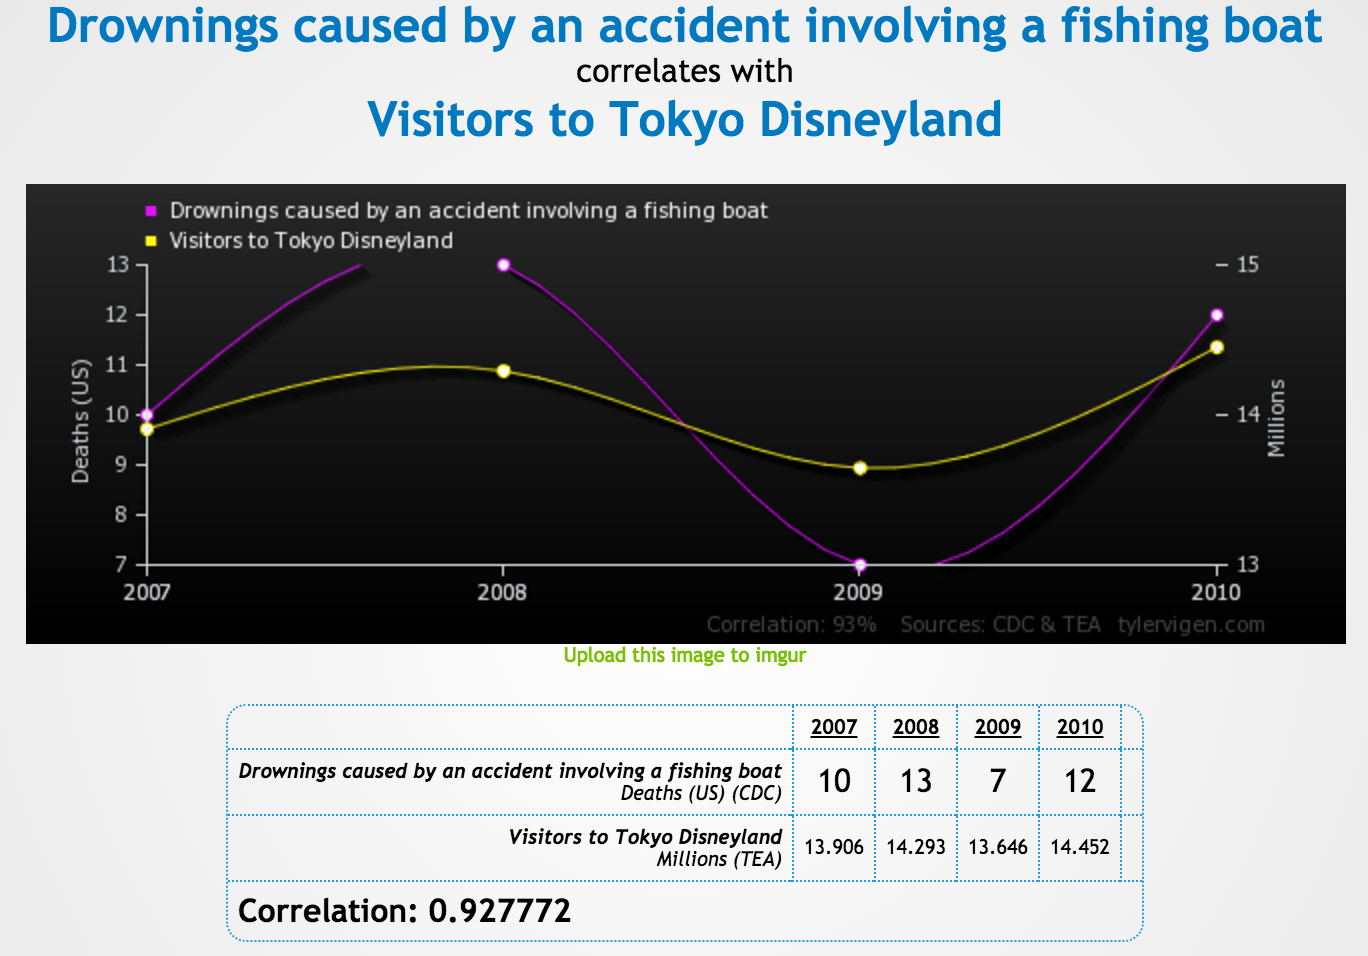 """Correlation between boat deaths and entries to Disneyland"" by tylervigen; Open licence (Free use permitted)"